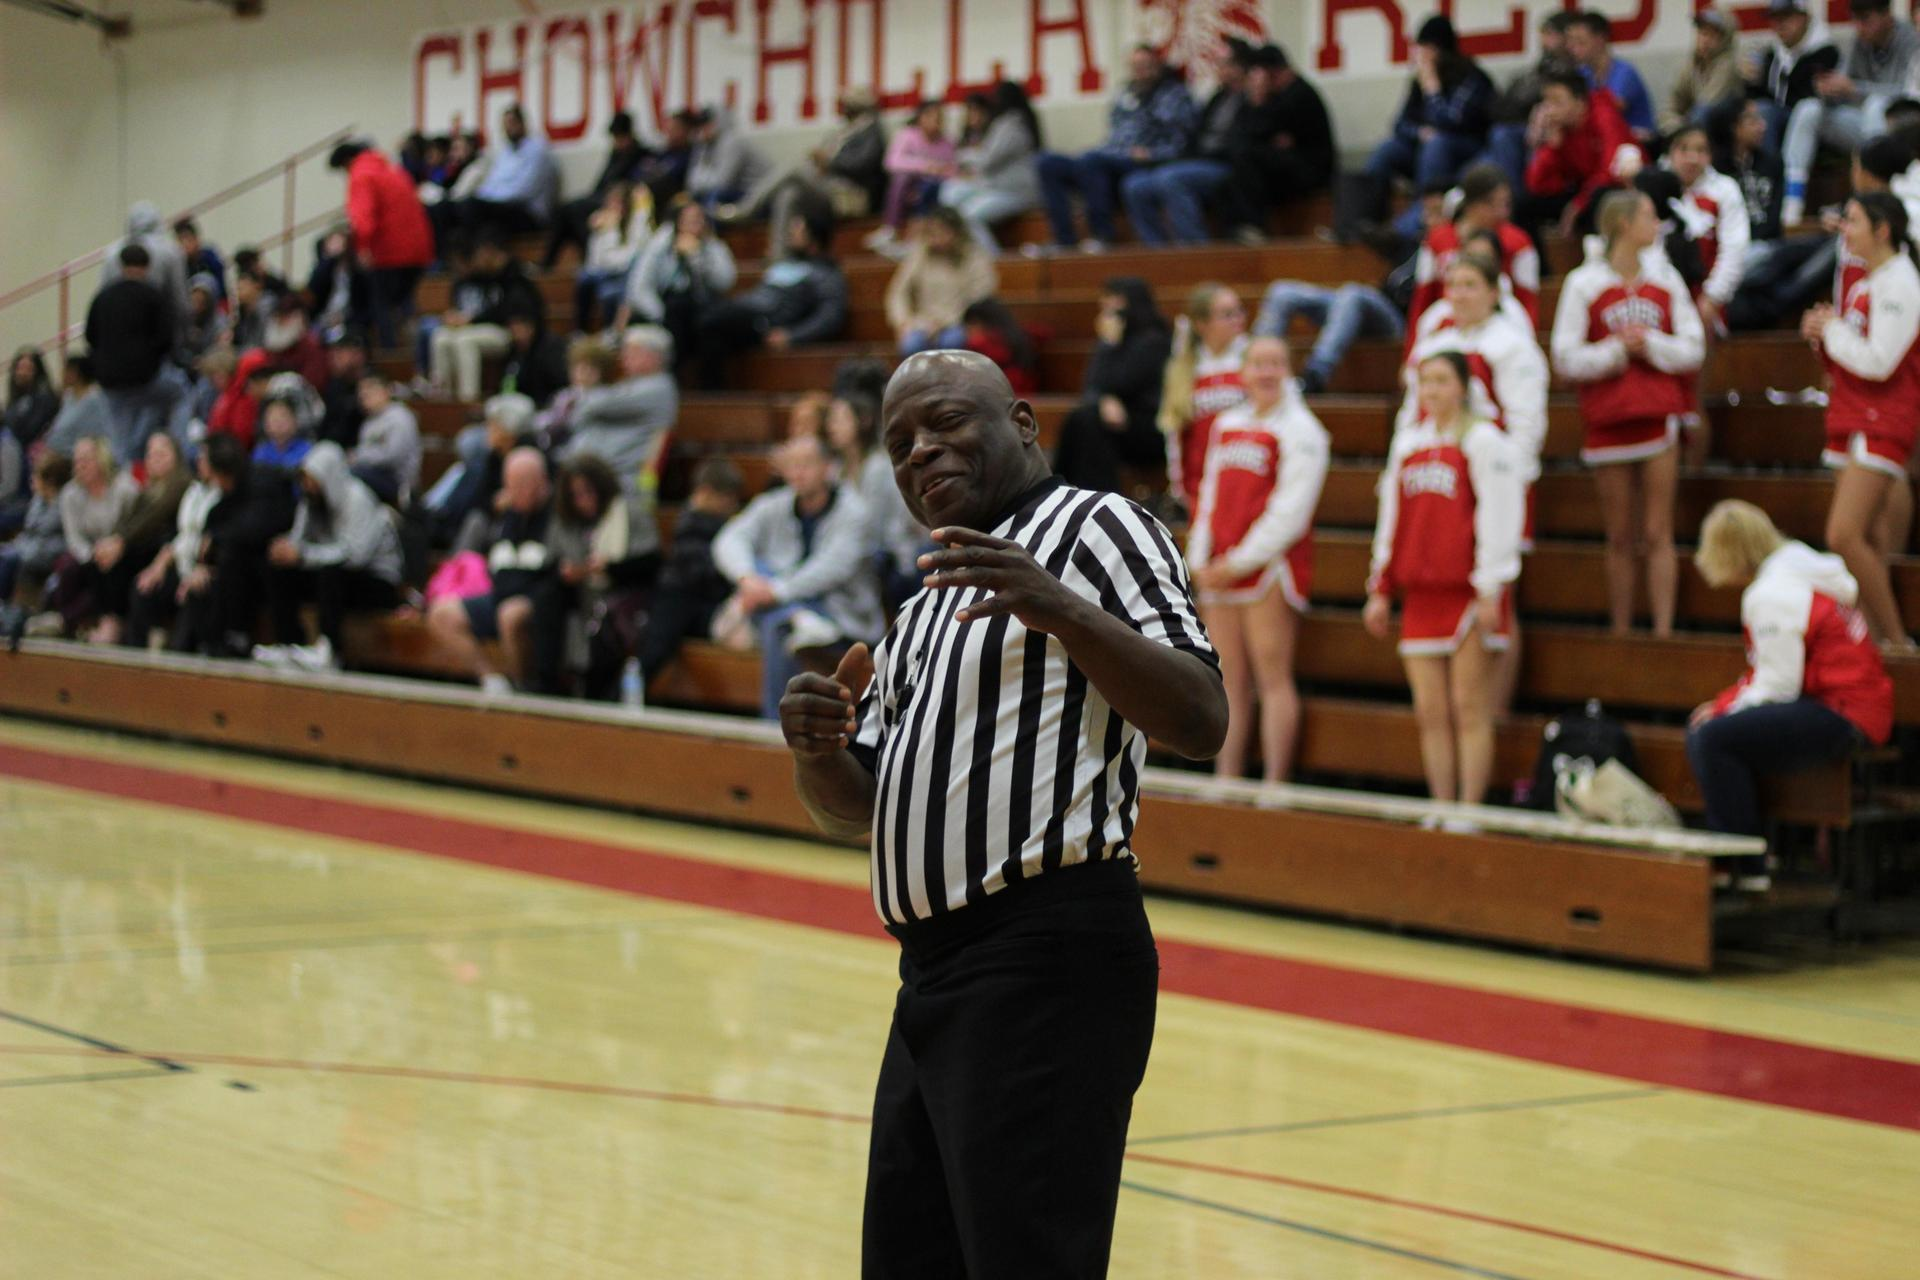 An official posing at the Mendota basketball game.